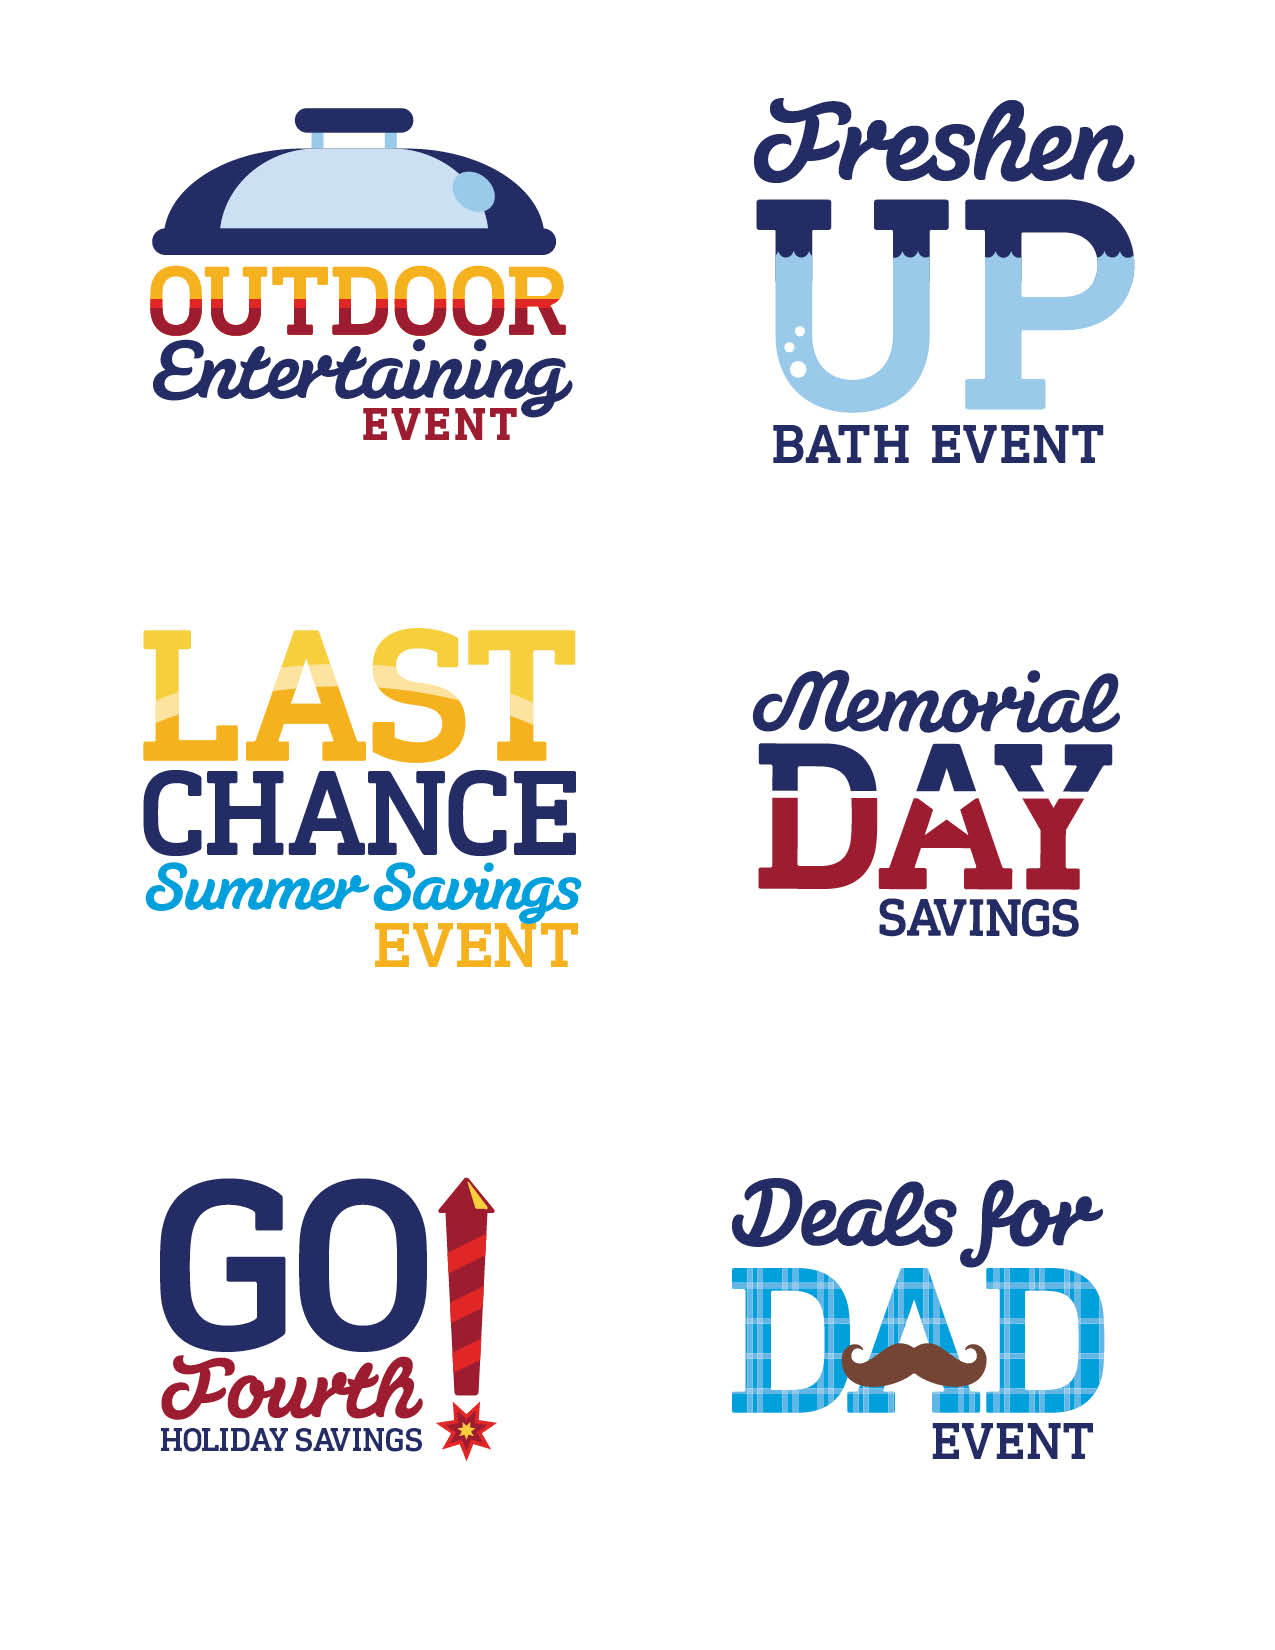 A series of retail event icons designed to bring a fresh, whimsical energy to each holiday.   Logo Design